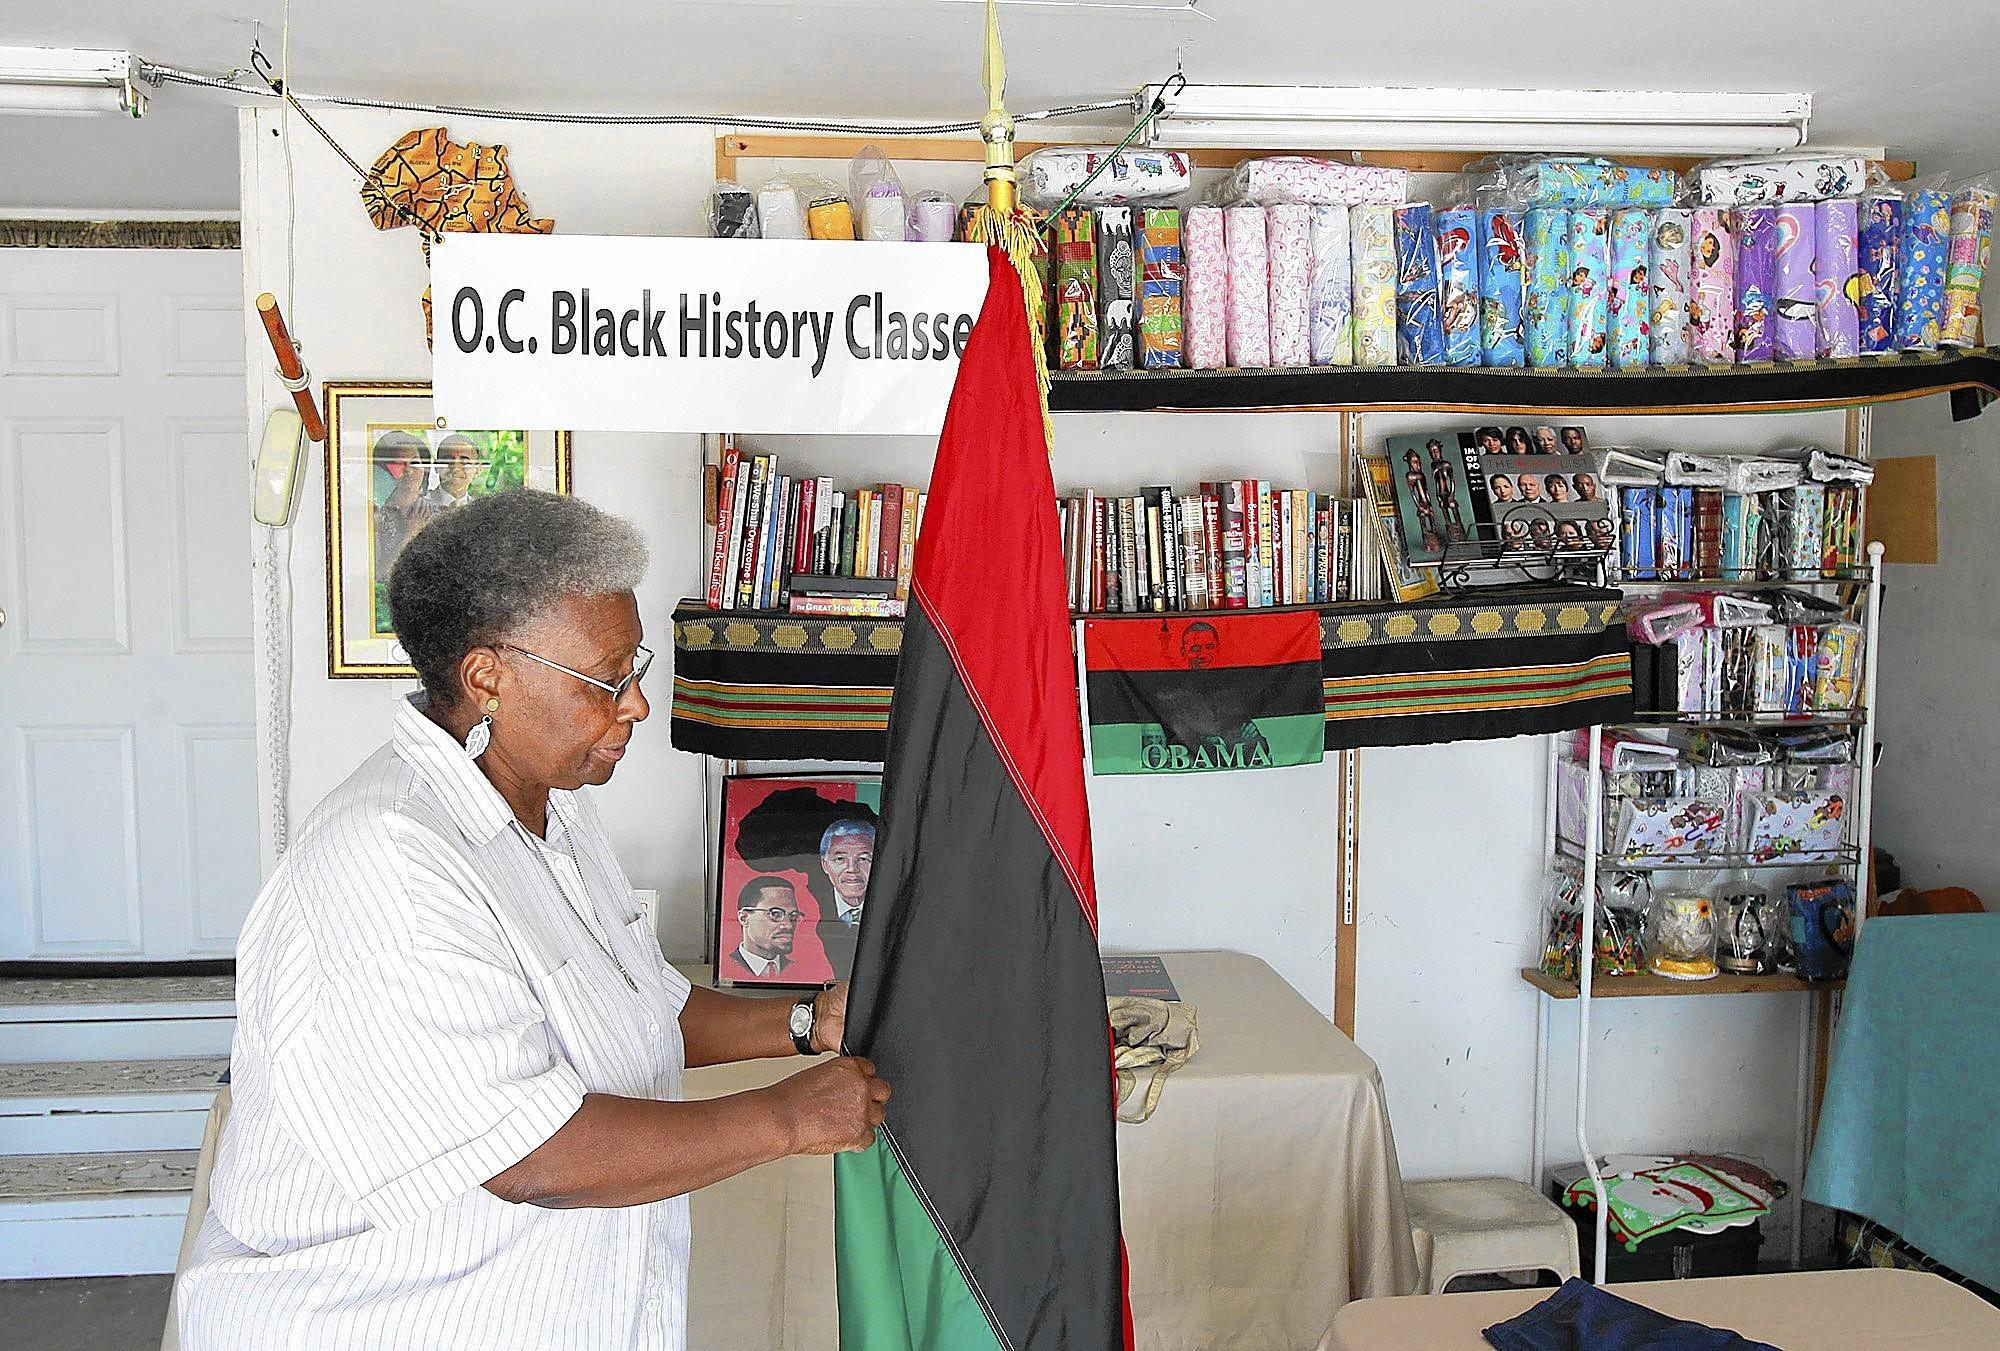 Instructor Bea Jones puts up a Universal African flag with green, black and red colors in the garage of Barbara Junious, where the two organize and lecture on Black History two times a month. They are looking for a permanent location so they can teach a wider audience.